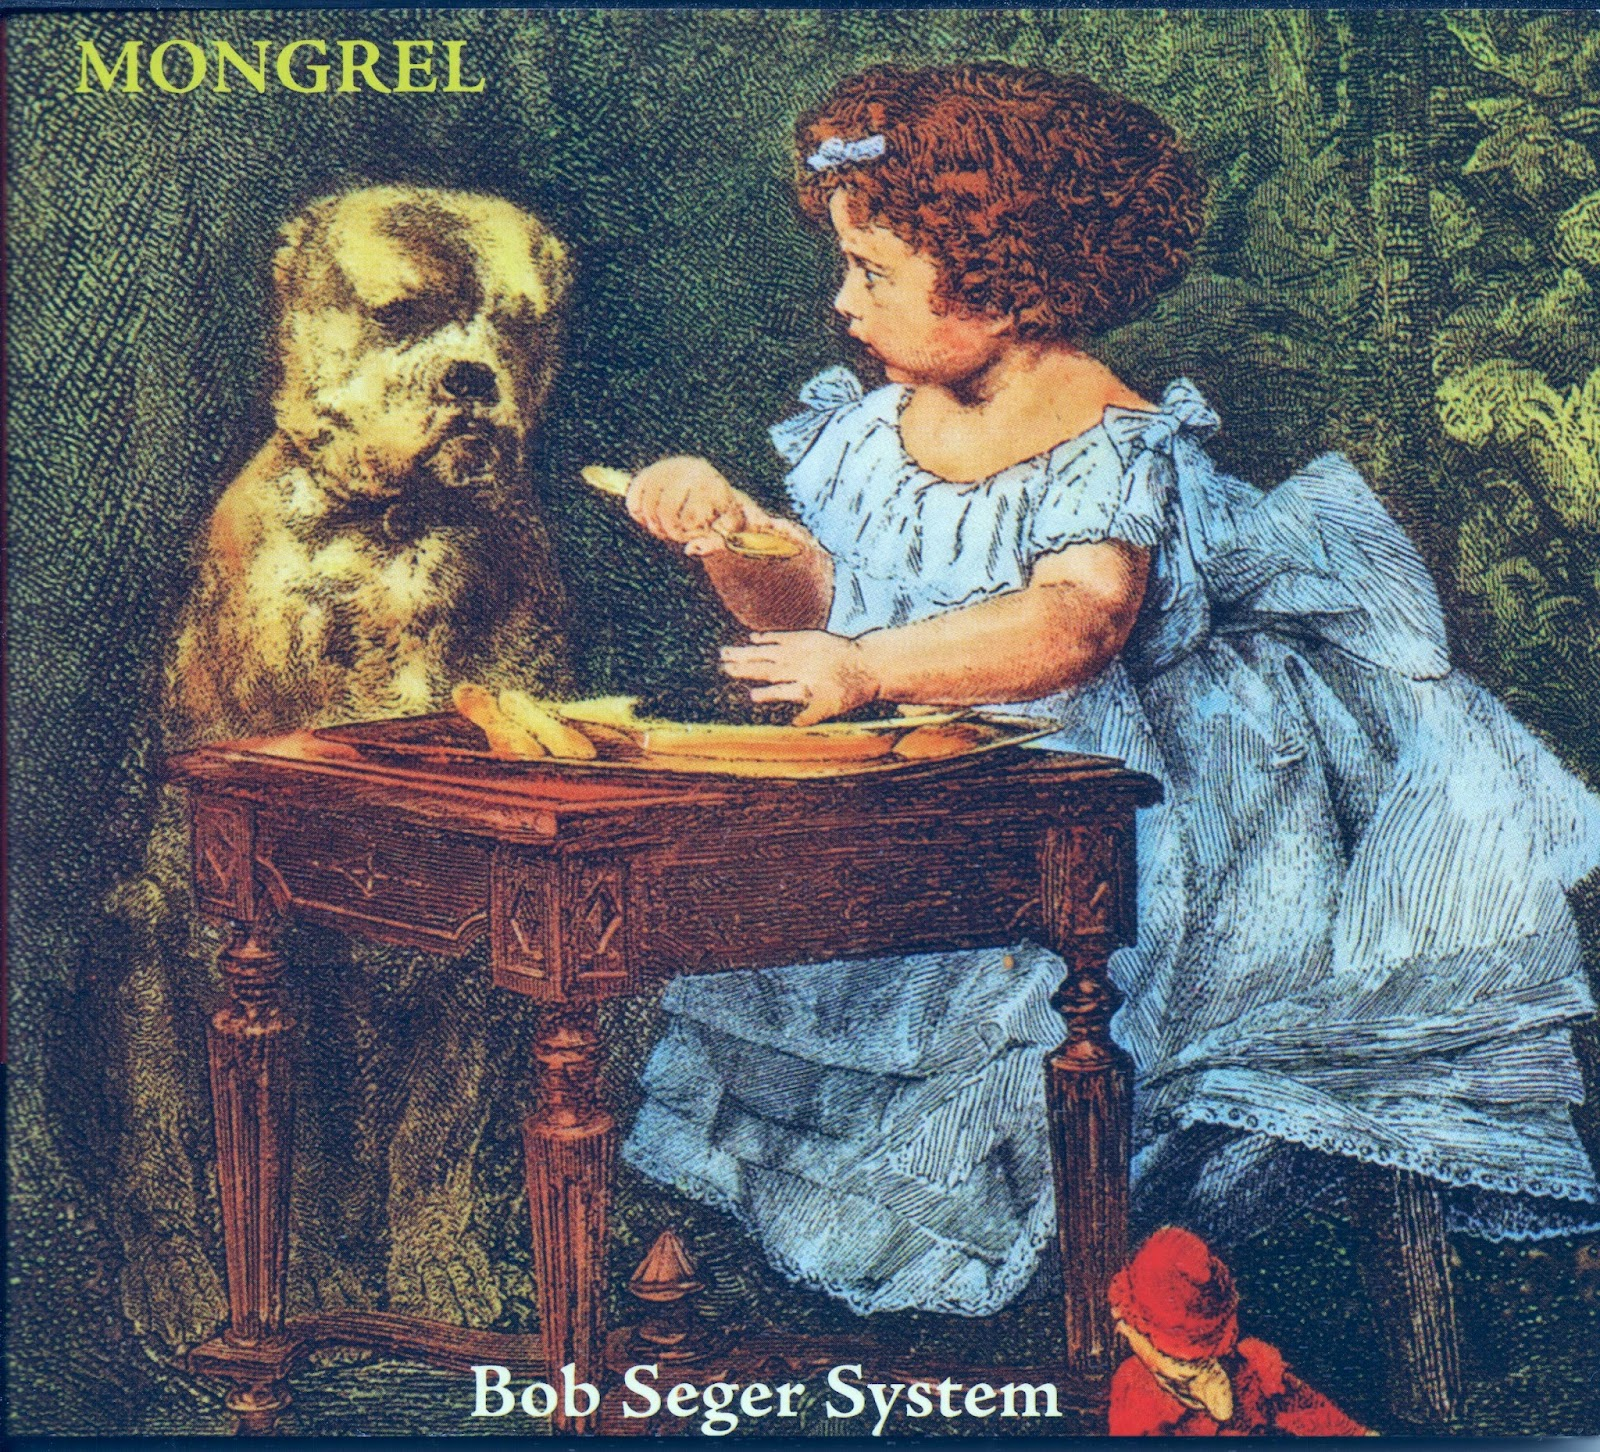 The Bob Seger System - Mongrel (1970 us, fantastic hard, rhythm and